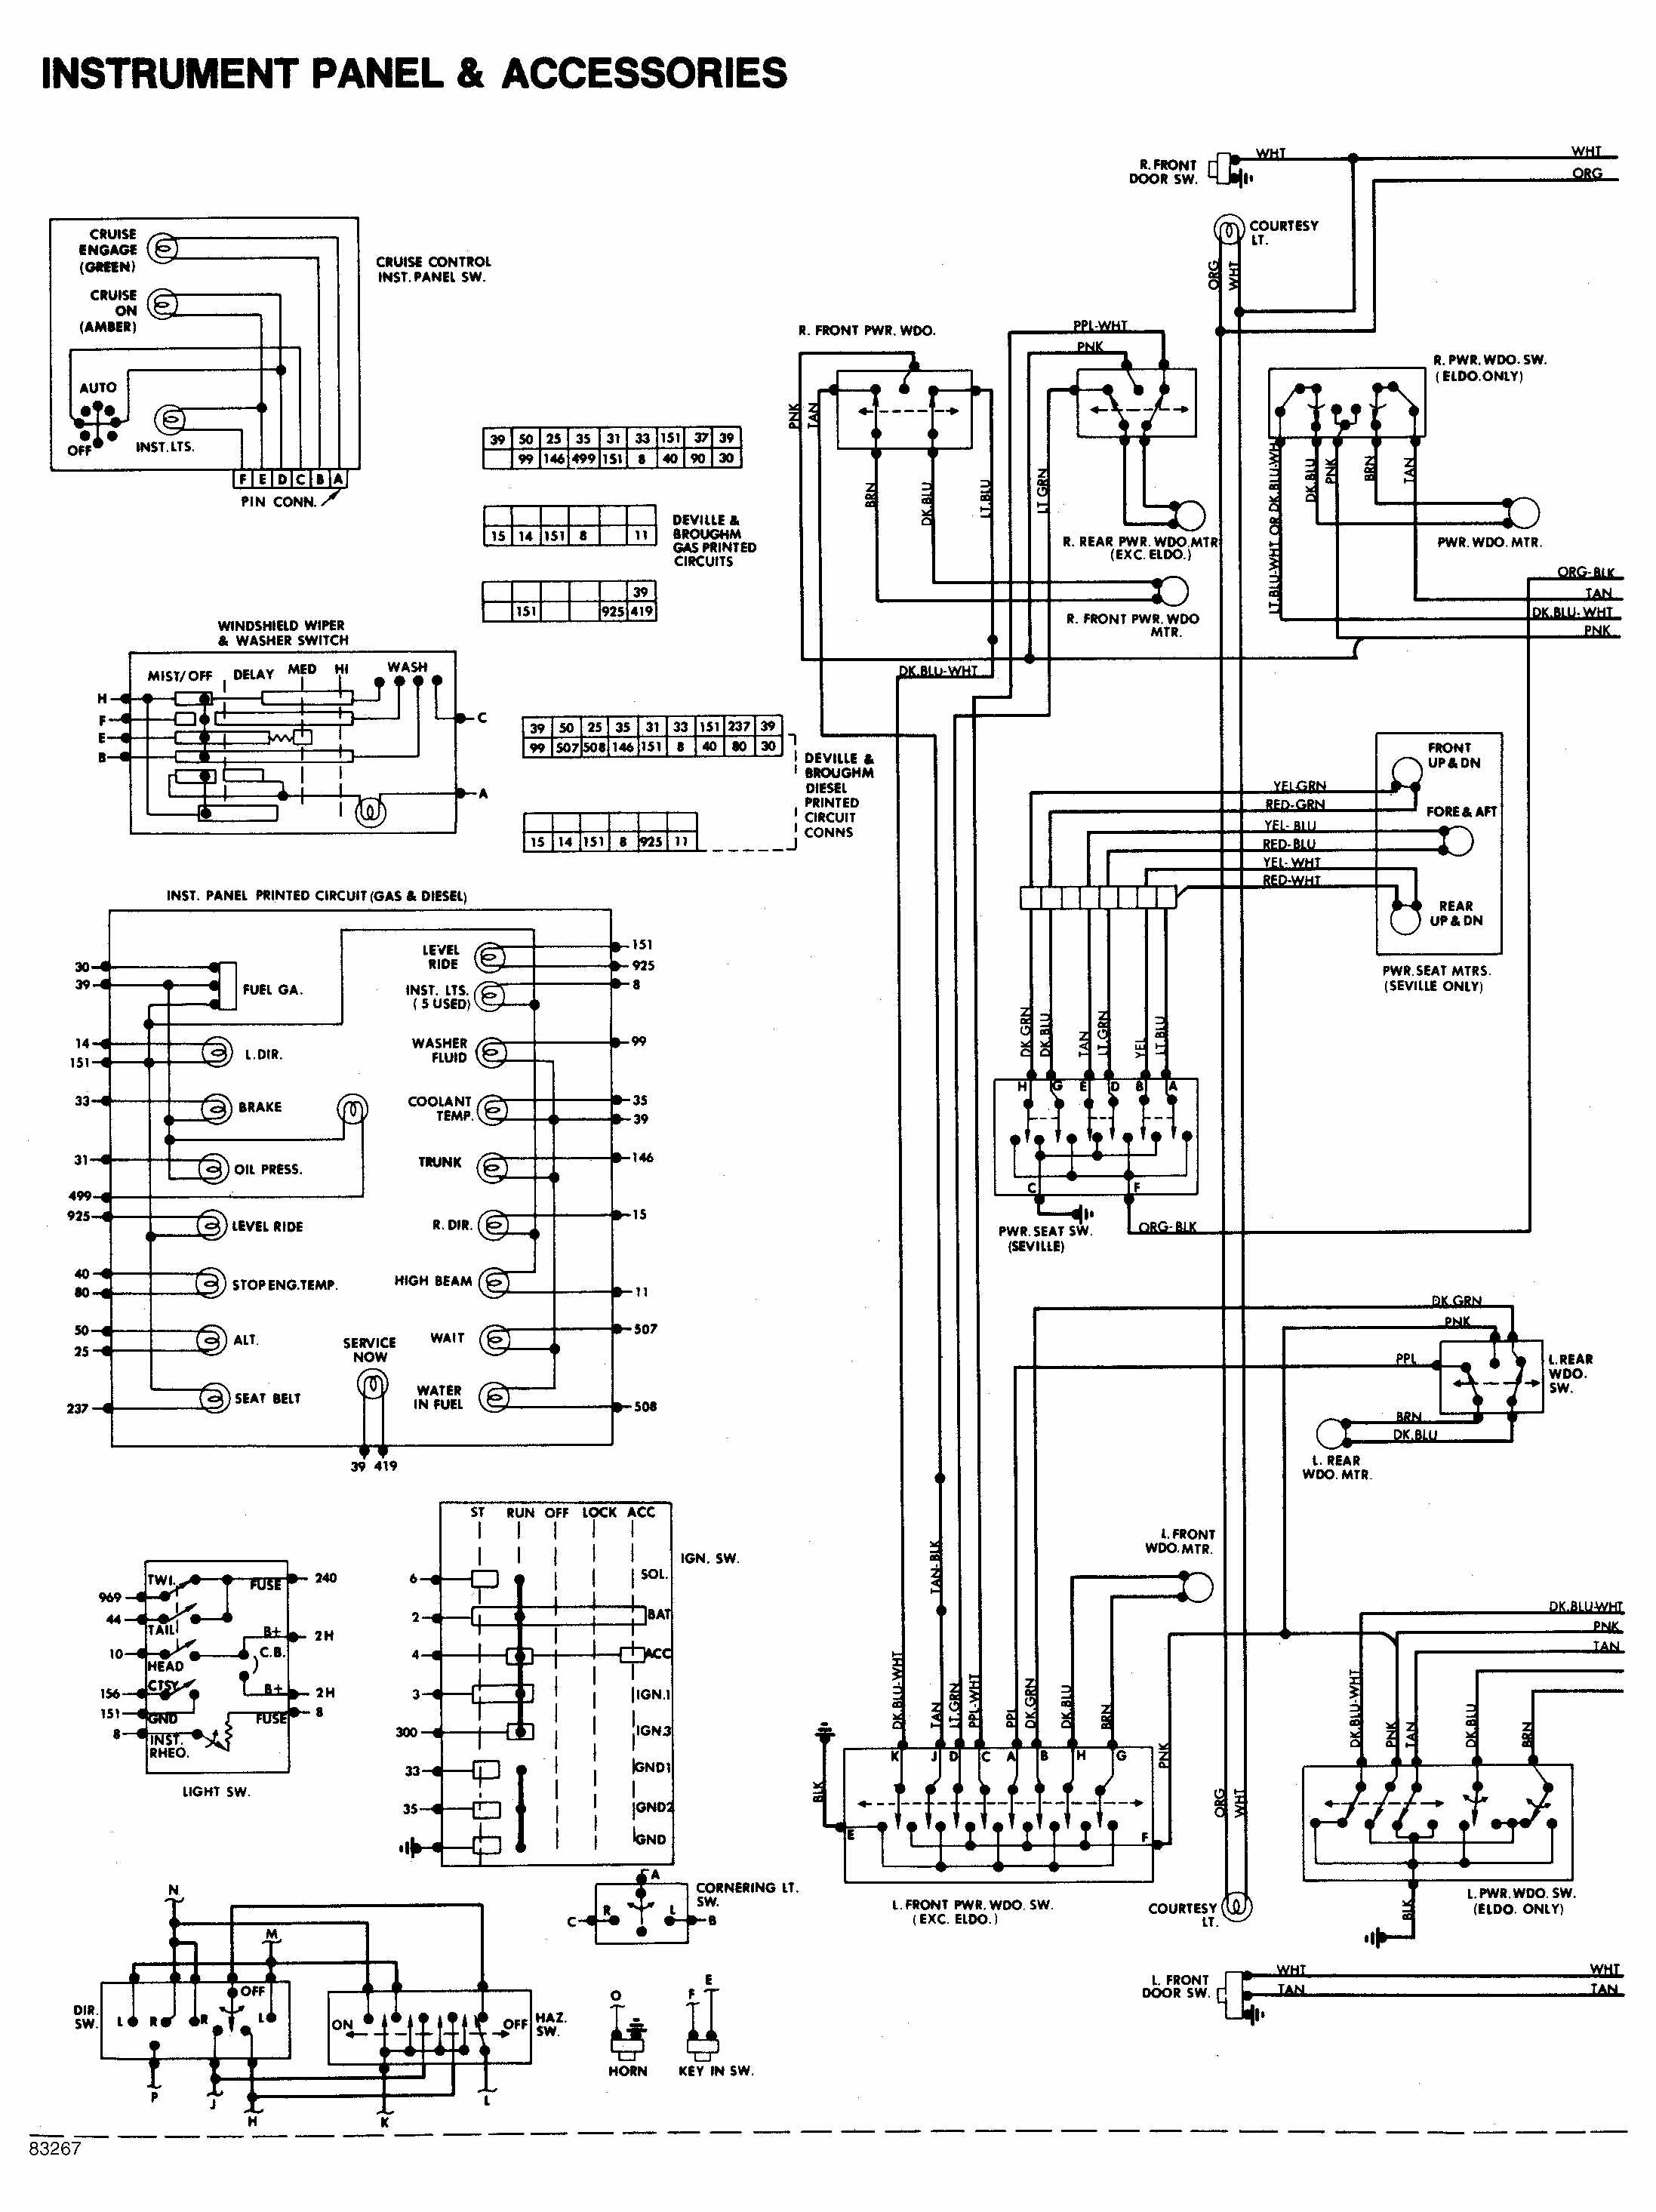 instrument panel and accessories wiring diagram of 1984 cadillac deville gm wiring diagrams gm wiring diagrams online \u2022 wiring diagrams j 1995 cadillac wiring diagrams at reclaimingppi.co